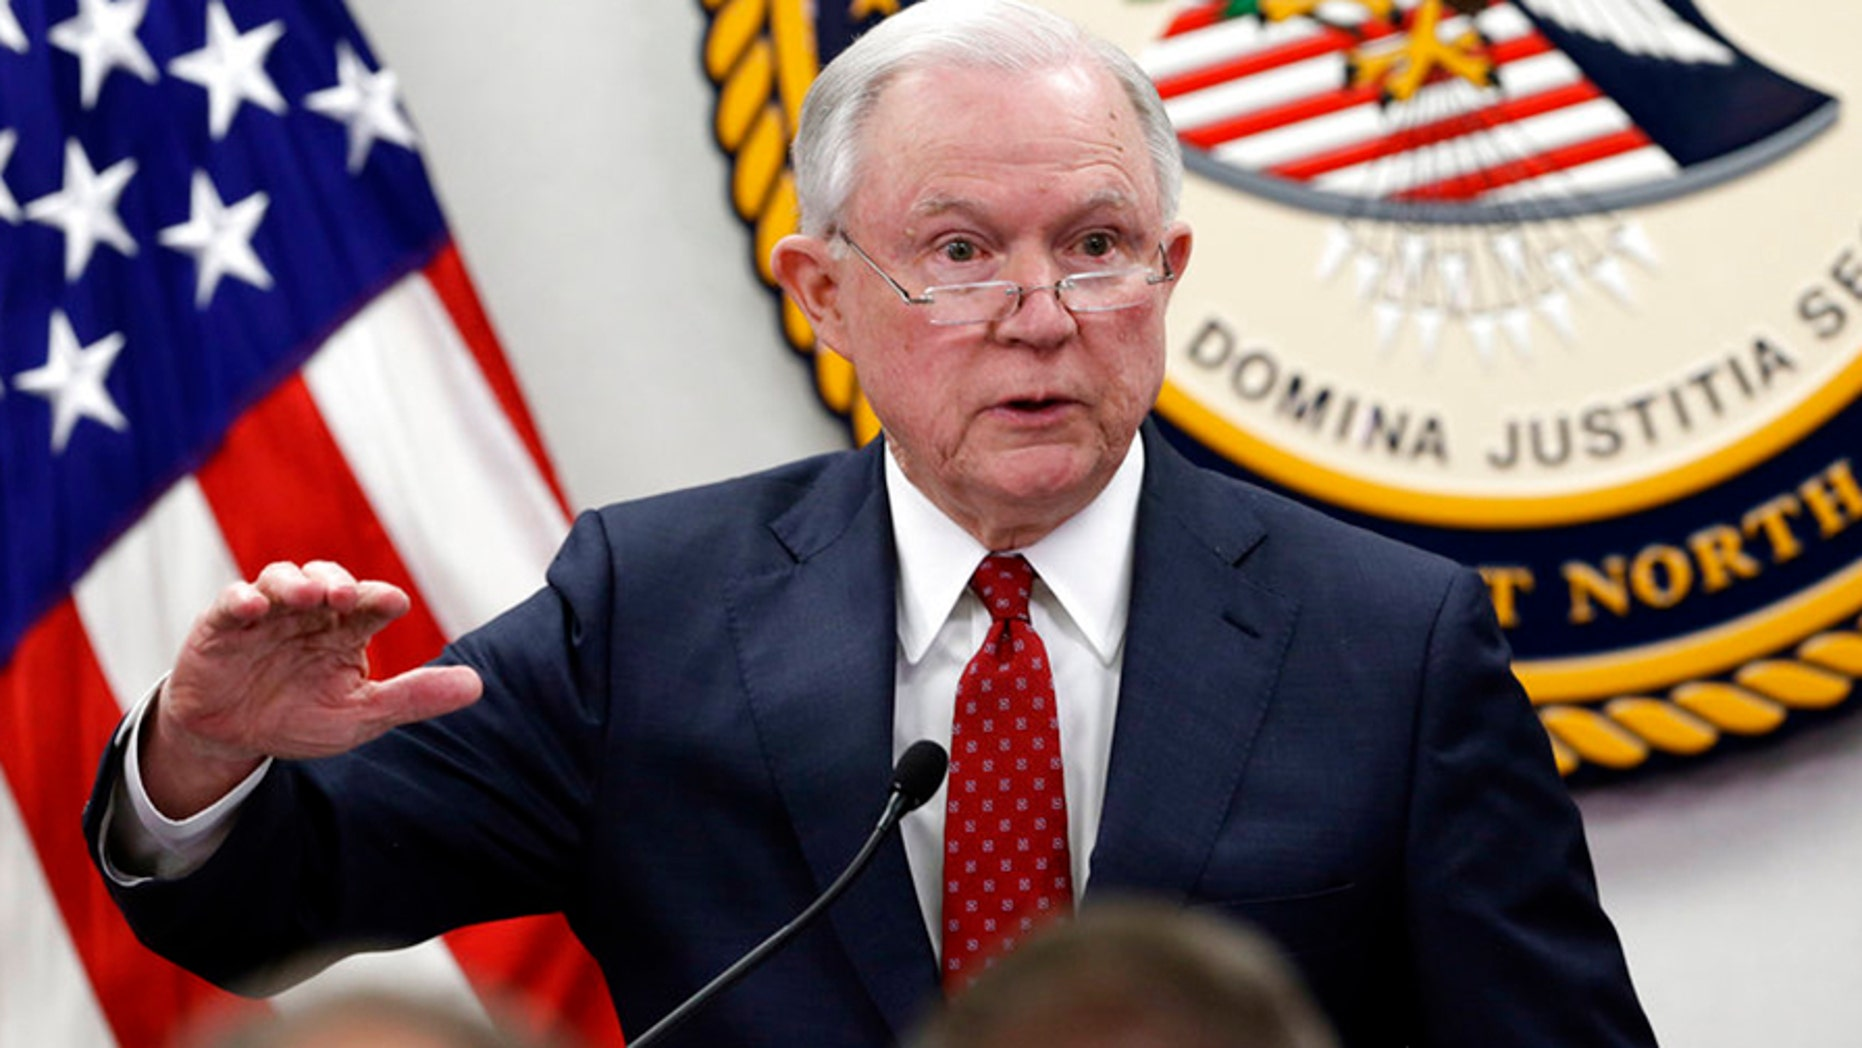 Attorney General Jeff Sessions reportedly told the White House he may quit if Trump fires Deputy AG Rod Rosenstein.